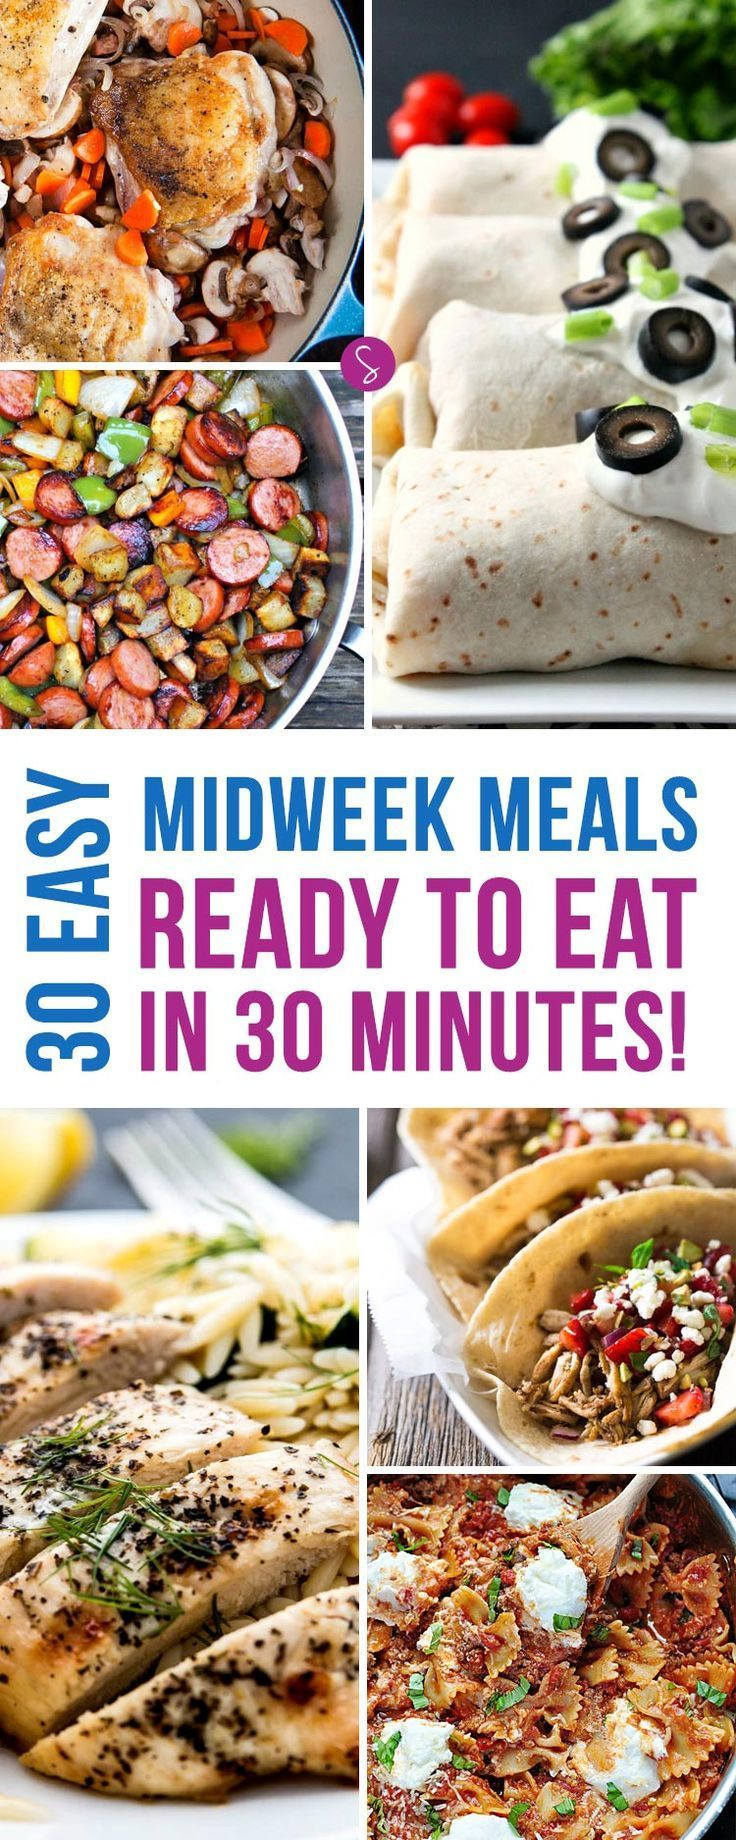 One whole month's worth of deliciously simple midweek meals the whole family will love. Prepped and on the table in 30 minutes or less!